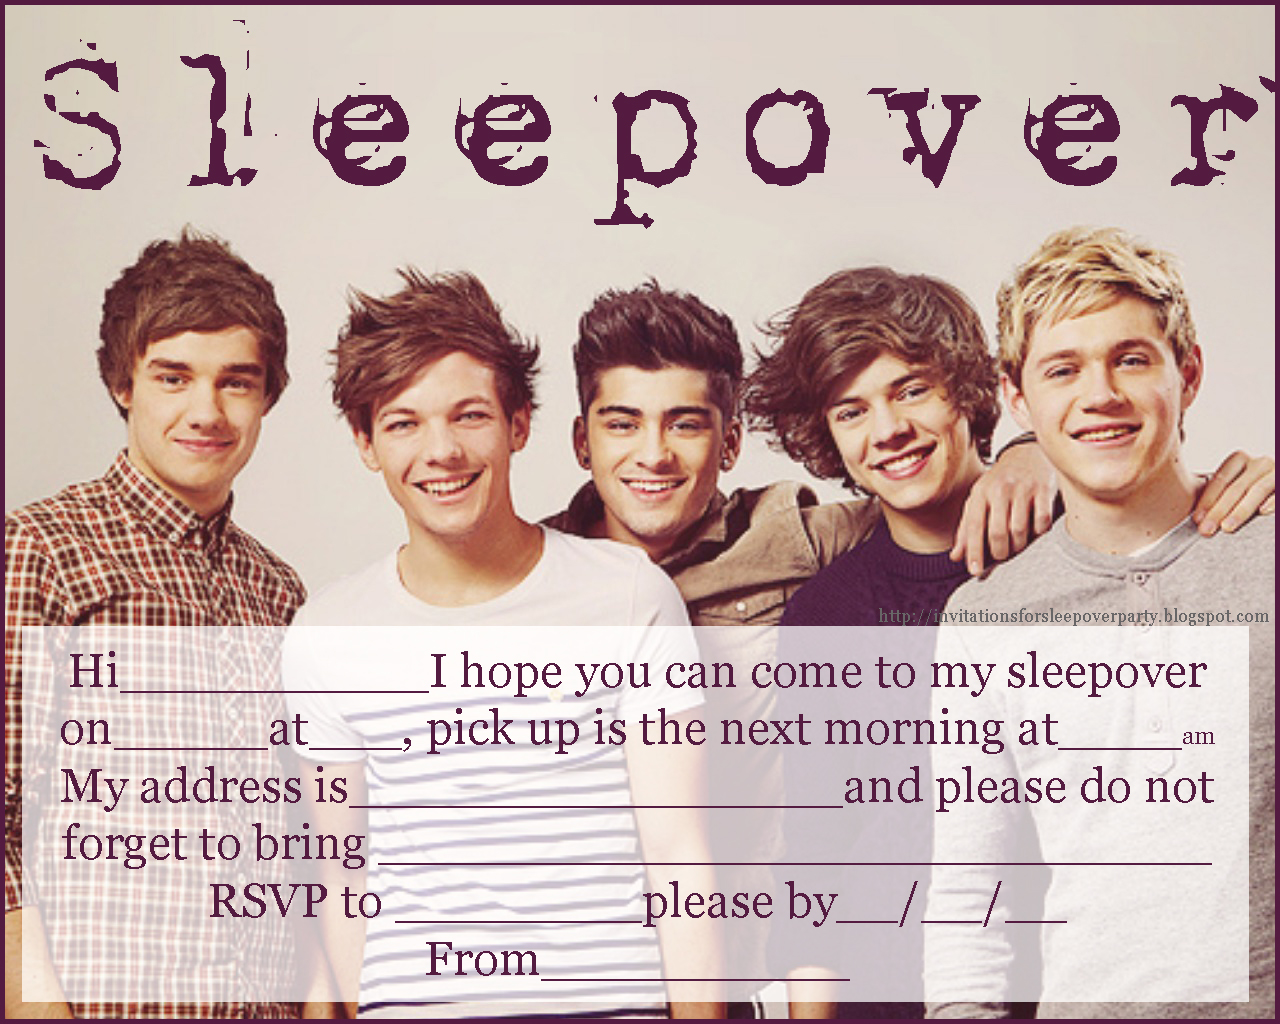 40th birthday ideas: one direction birthday invitation templates free, Printable invitations